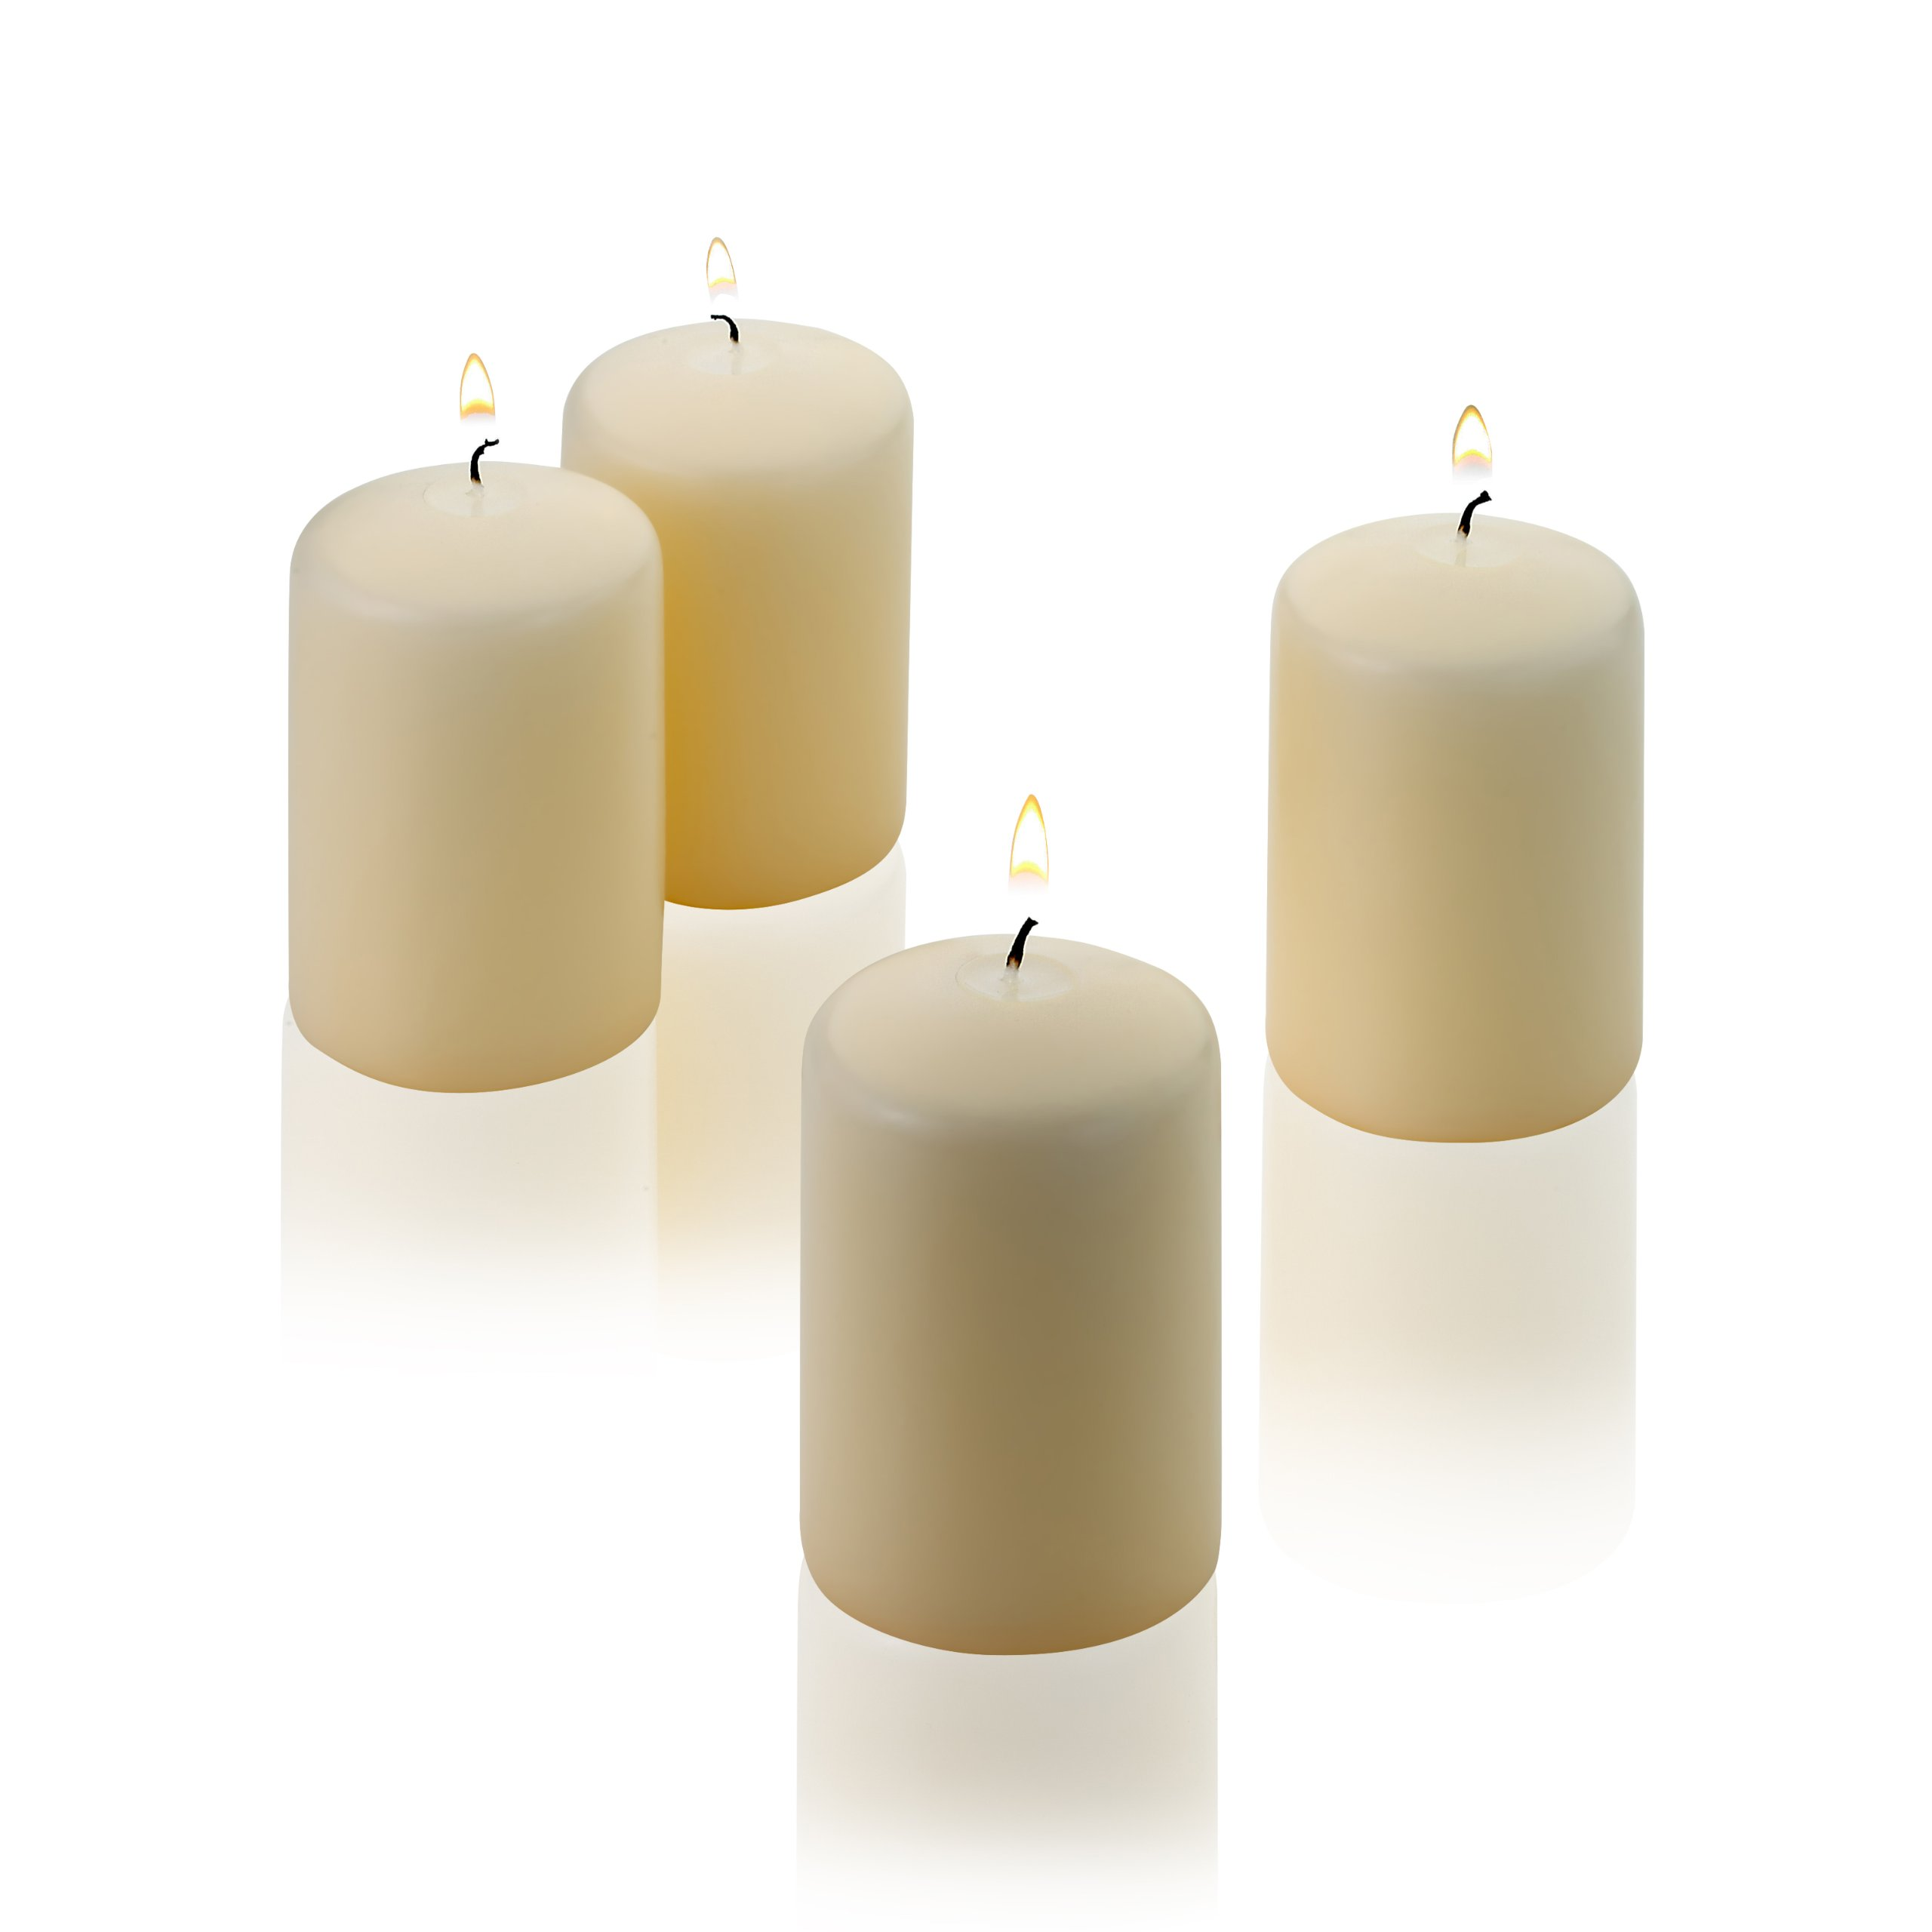 Vanilla Pillar Candles - Set of 4 Unscented Candles - 3 inch Tall, 2 inch Thick - 18 hour Clean Burn Time